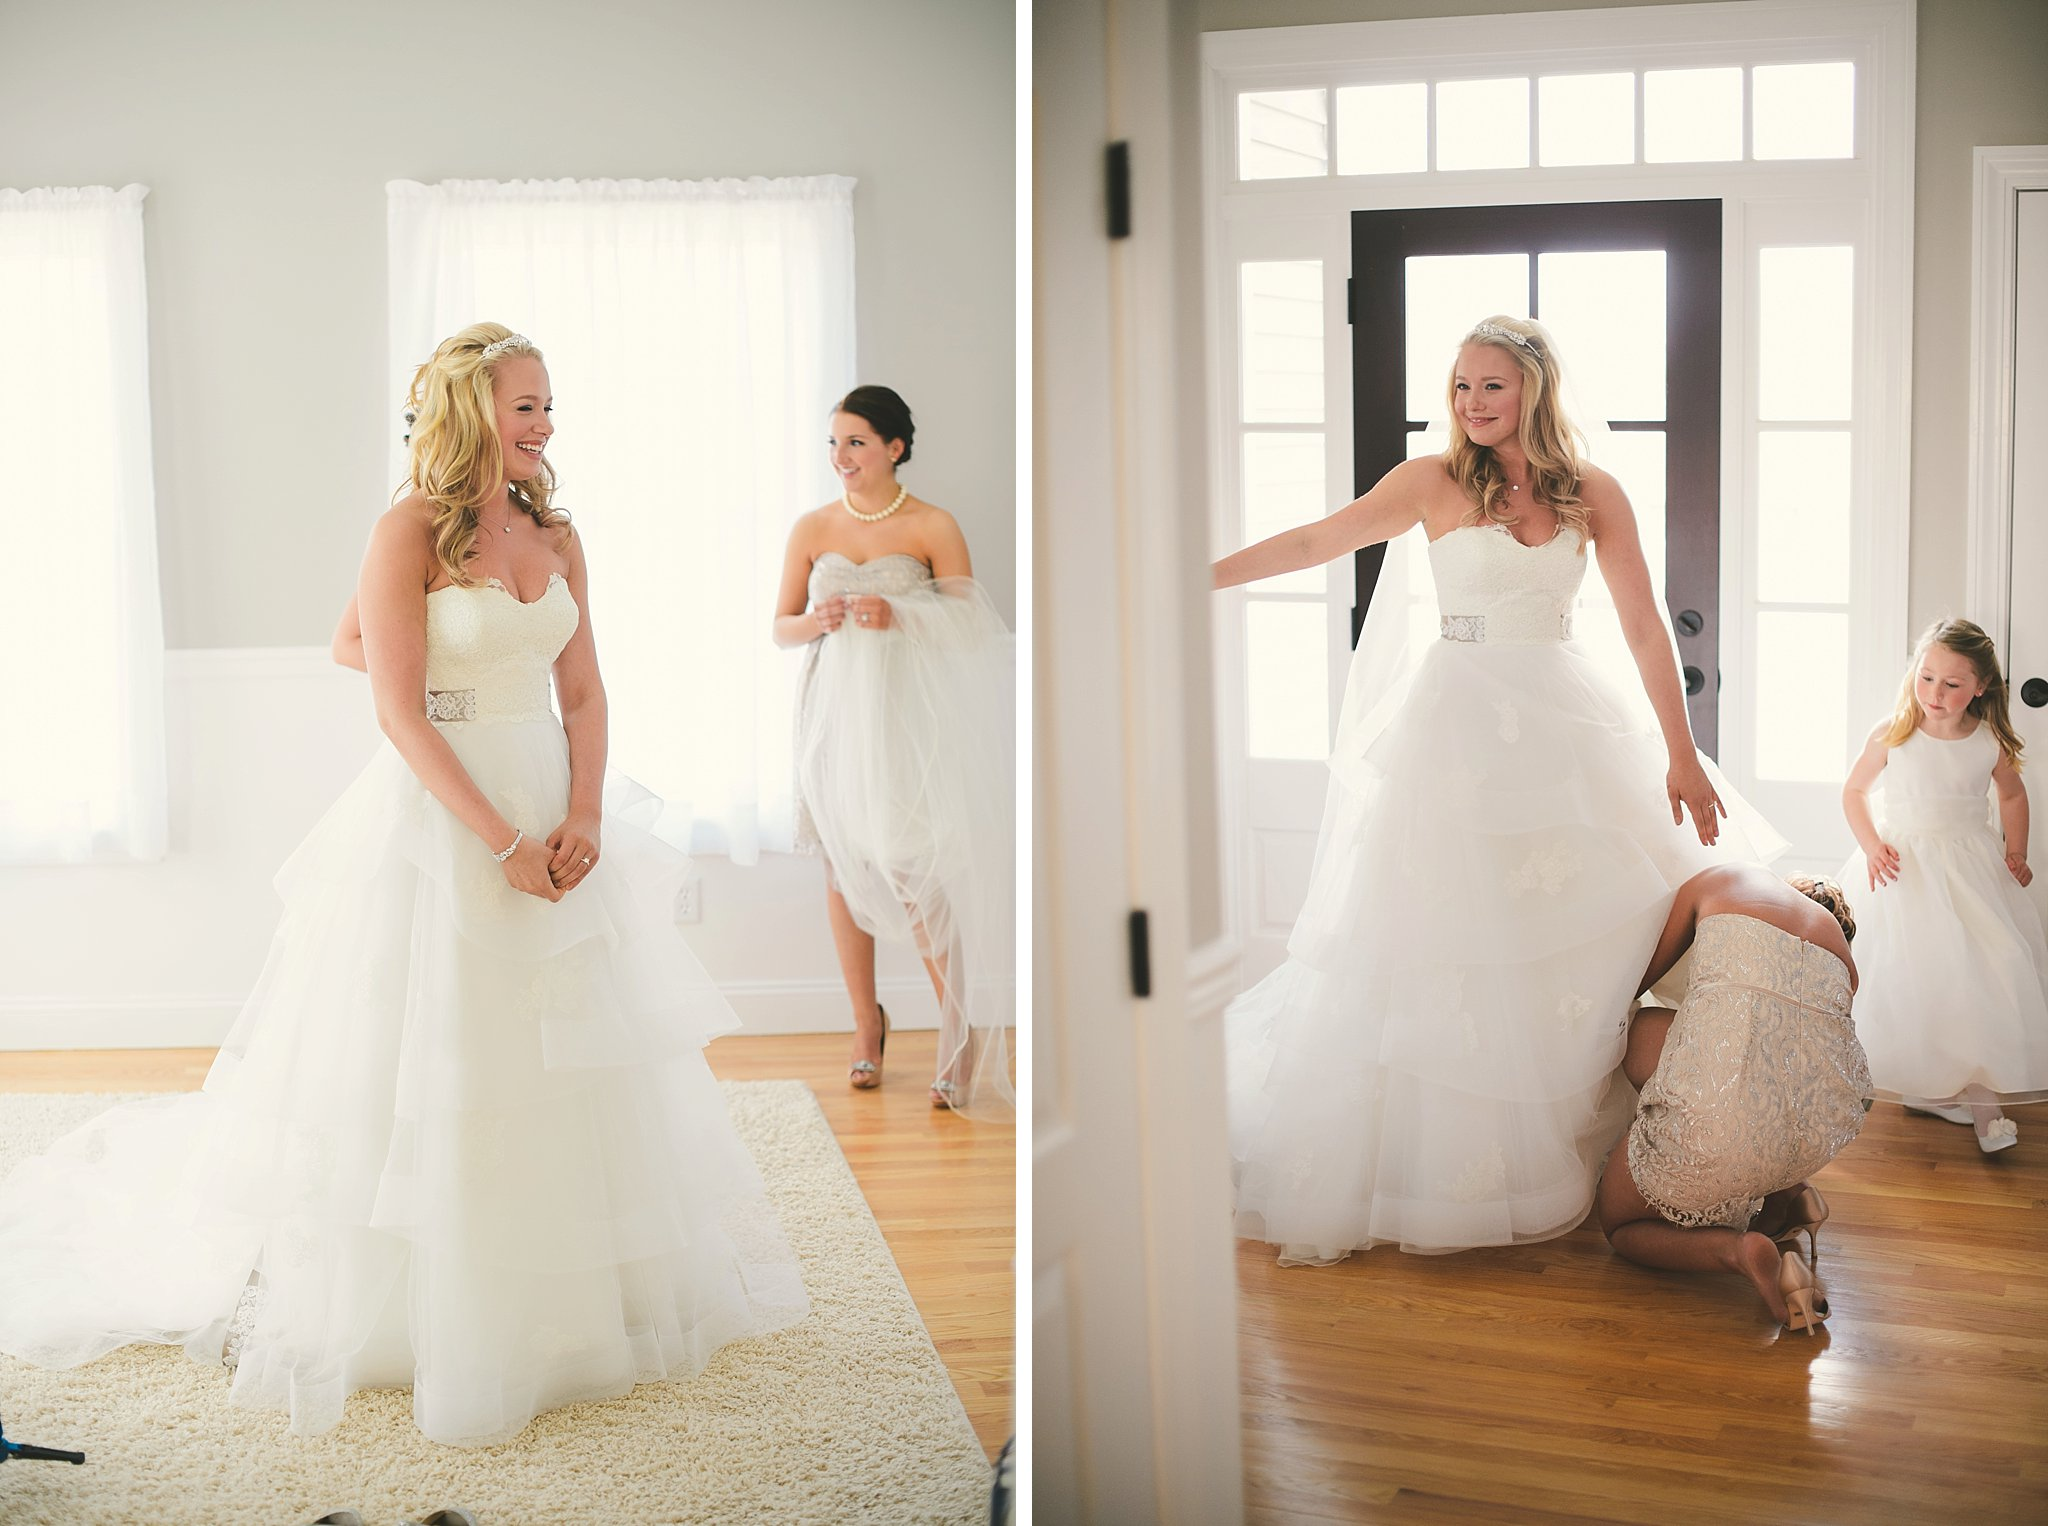 flaherty_wedding0204